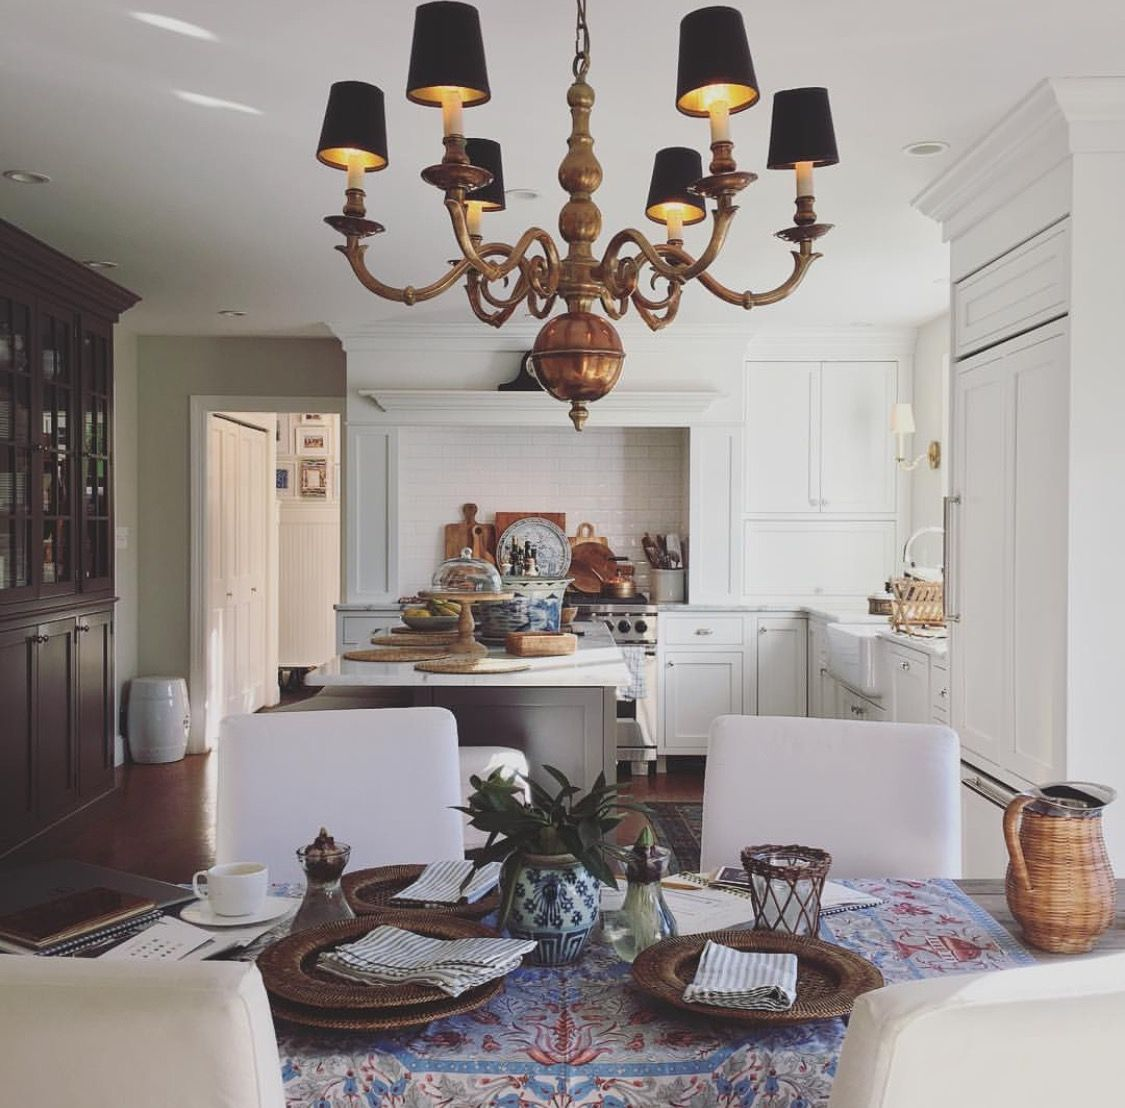 Can White Kitchen Cabinets Be Repainted: Kitchen Goals Via Maura Endres